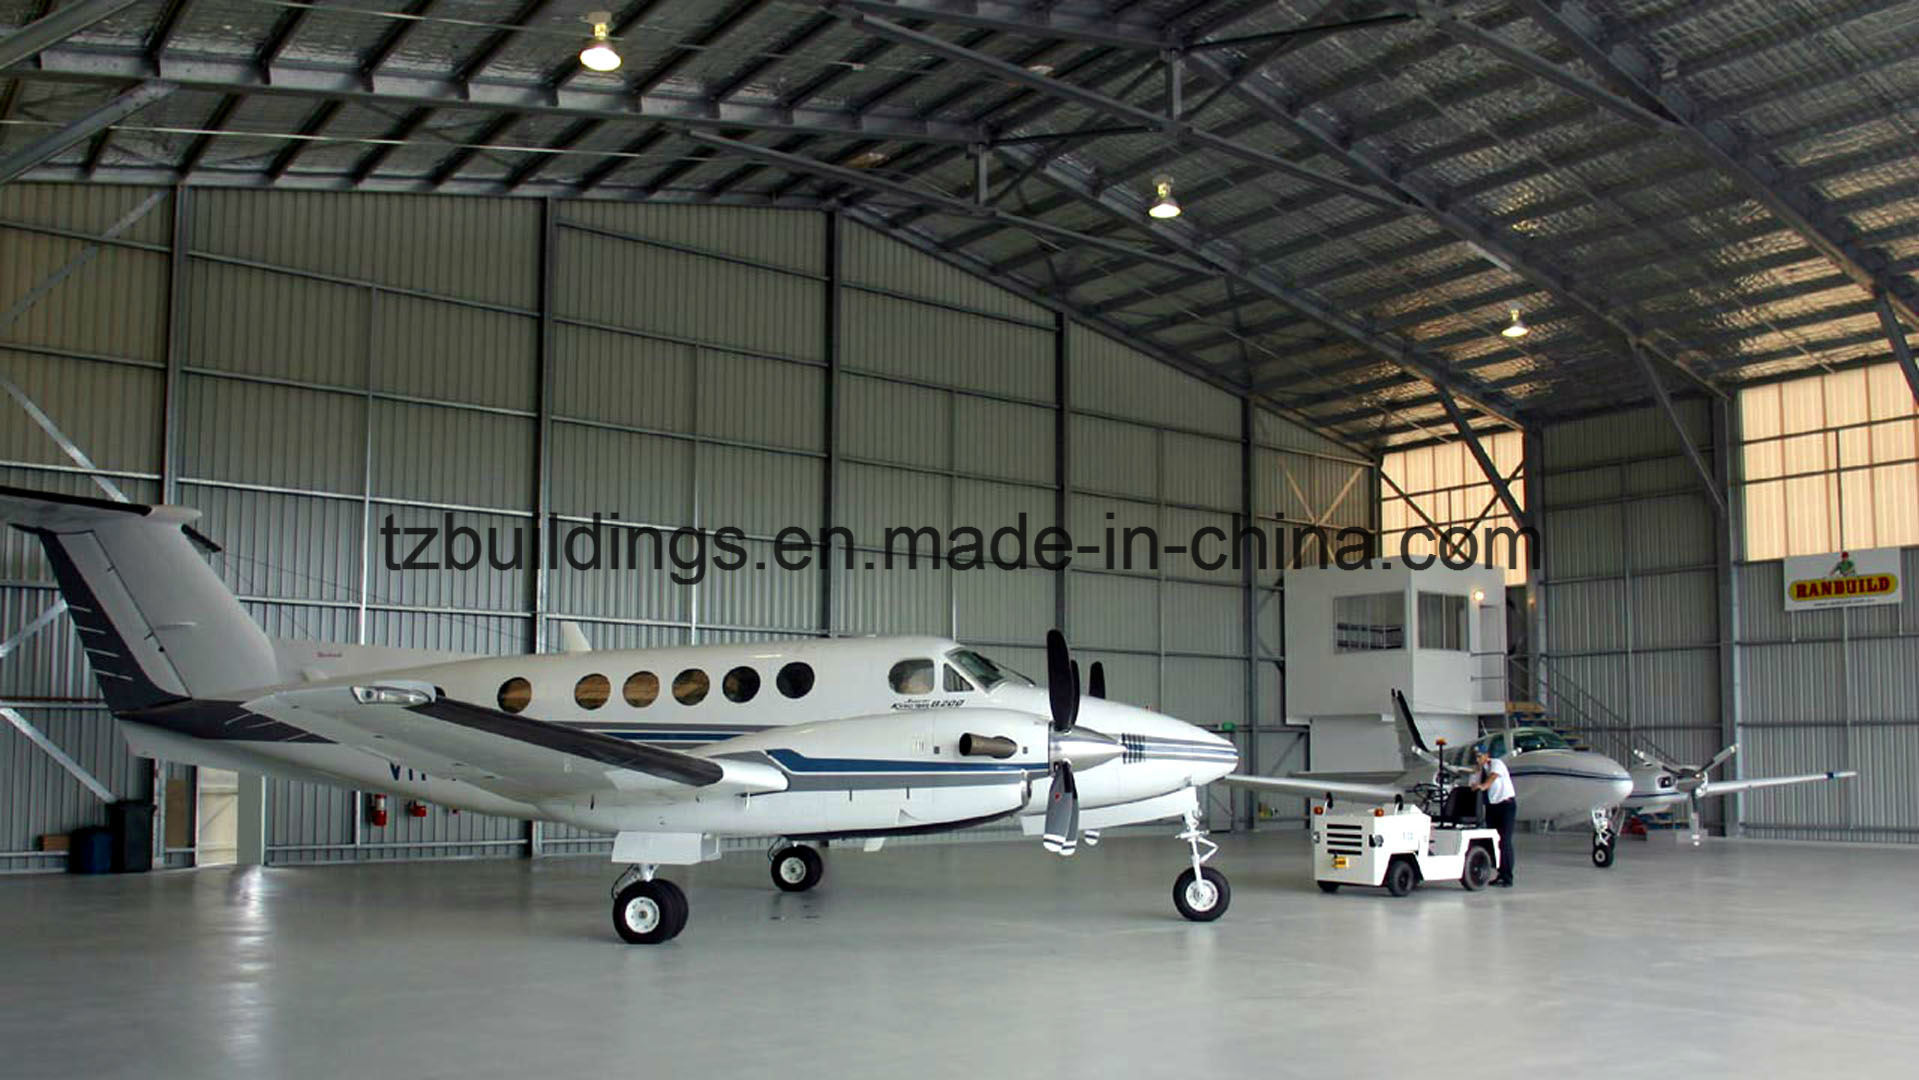 The Cost of Building Airplane Hangar with High Quality